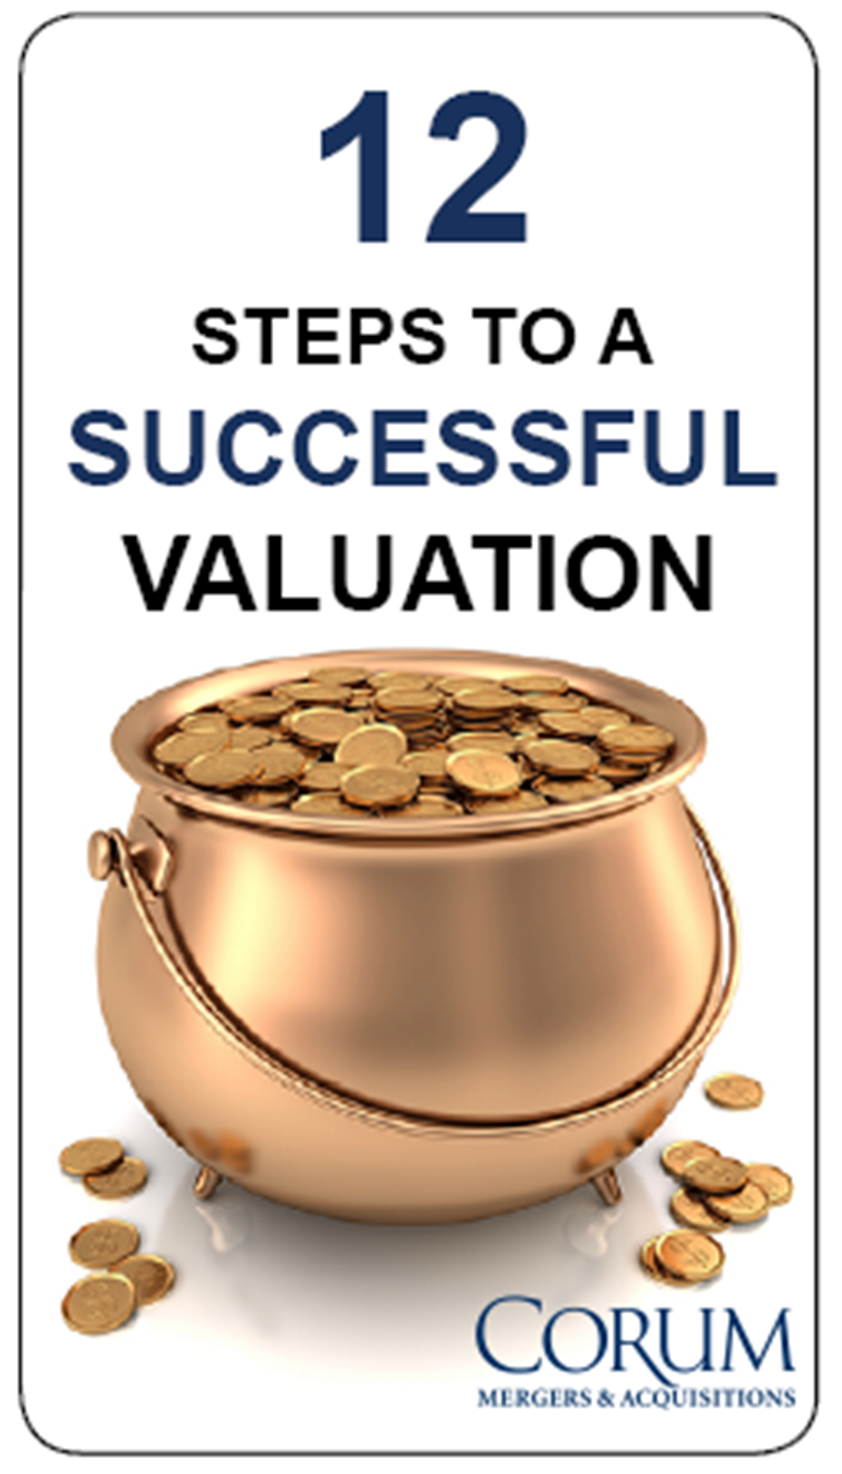 Tech M&A Monthly: 12 Tips for a Successful Valuation #5 & 6